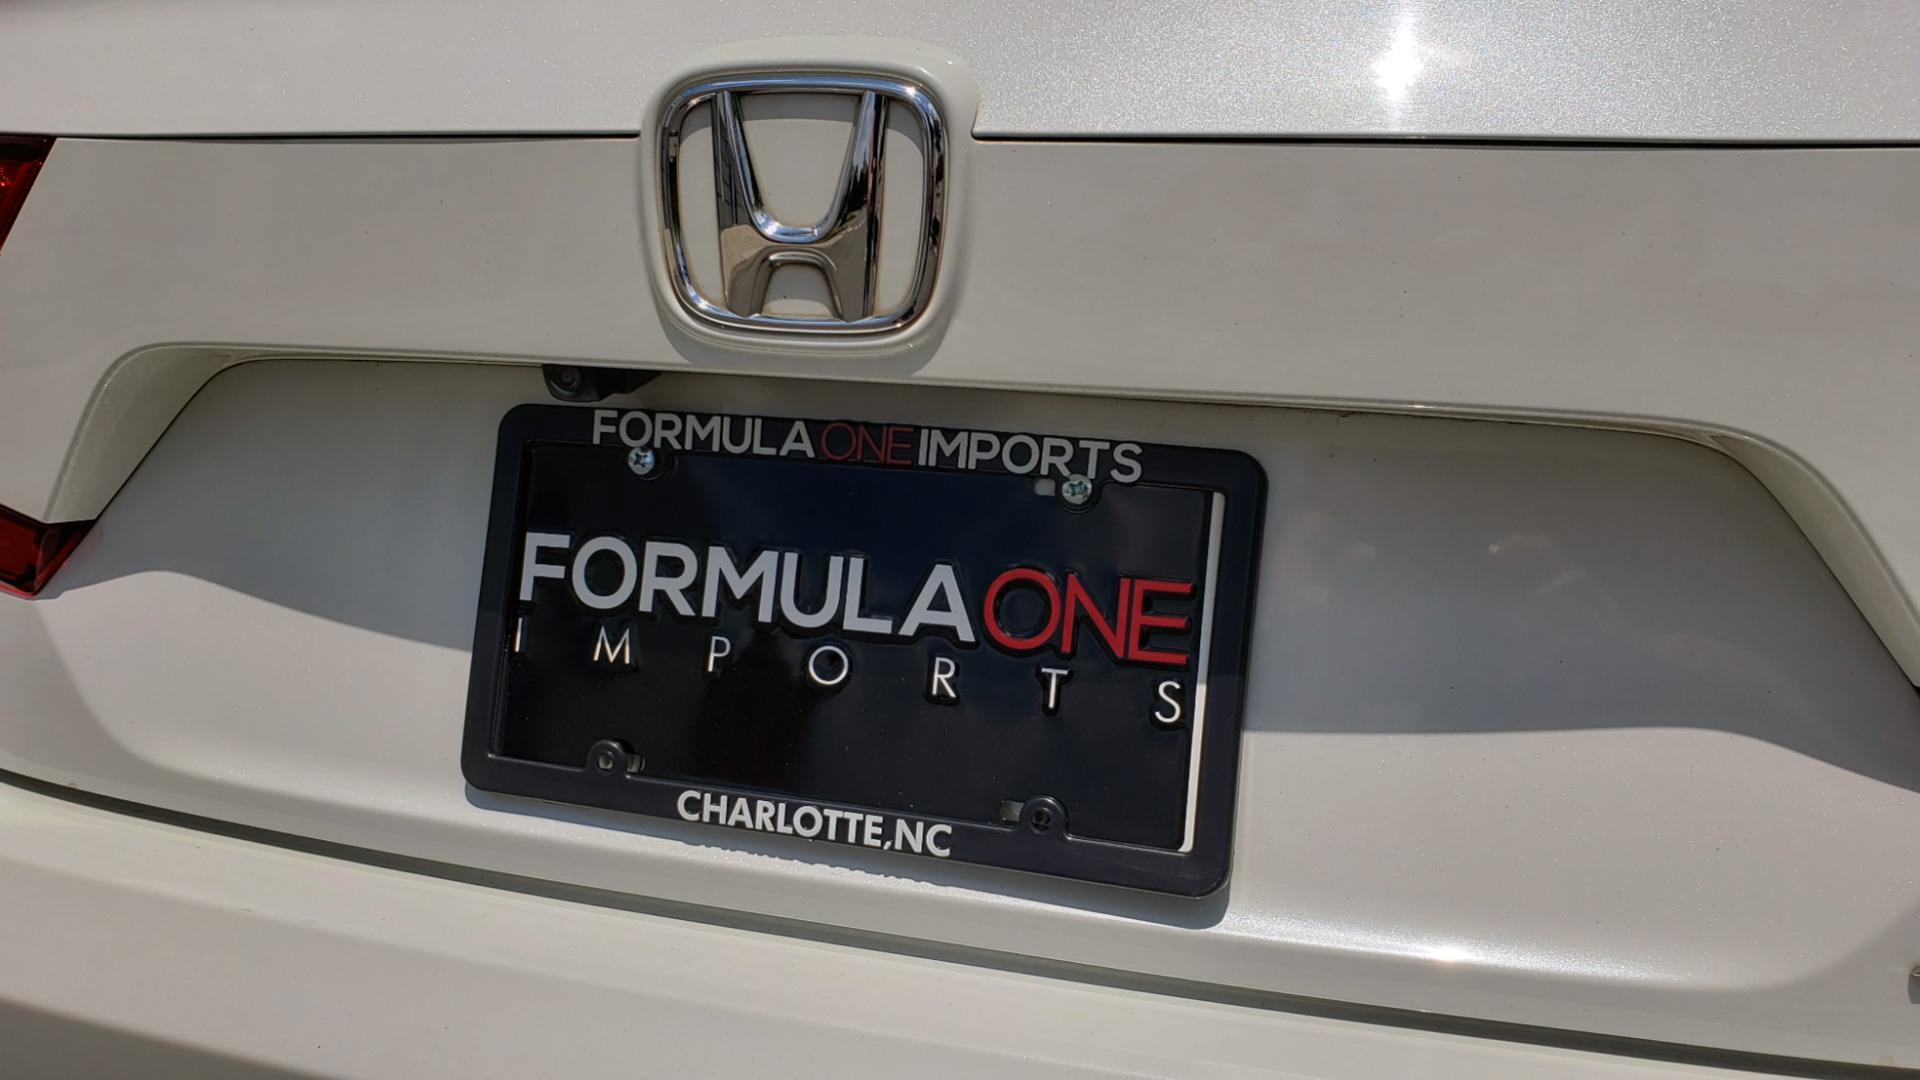 Used 2018 Honda ACCORD SEDAN SPORT 1.5T / CVT TRANS / FWD / 19IN WHEELS for sale $20,995 at Formula Imports in Charlotte NC 28227 25